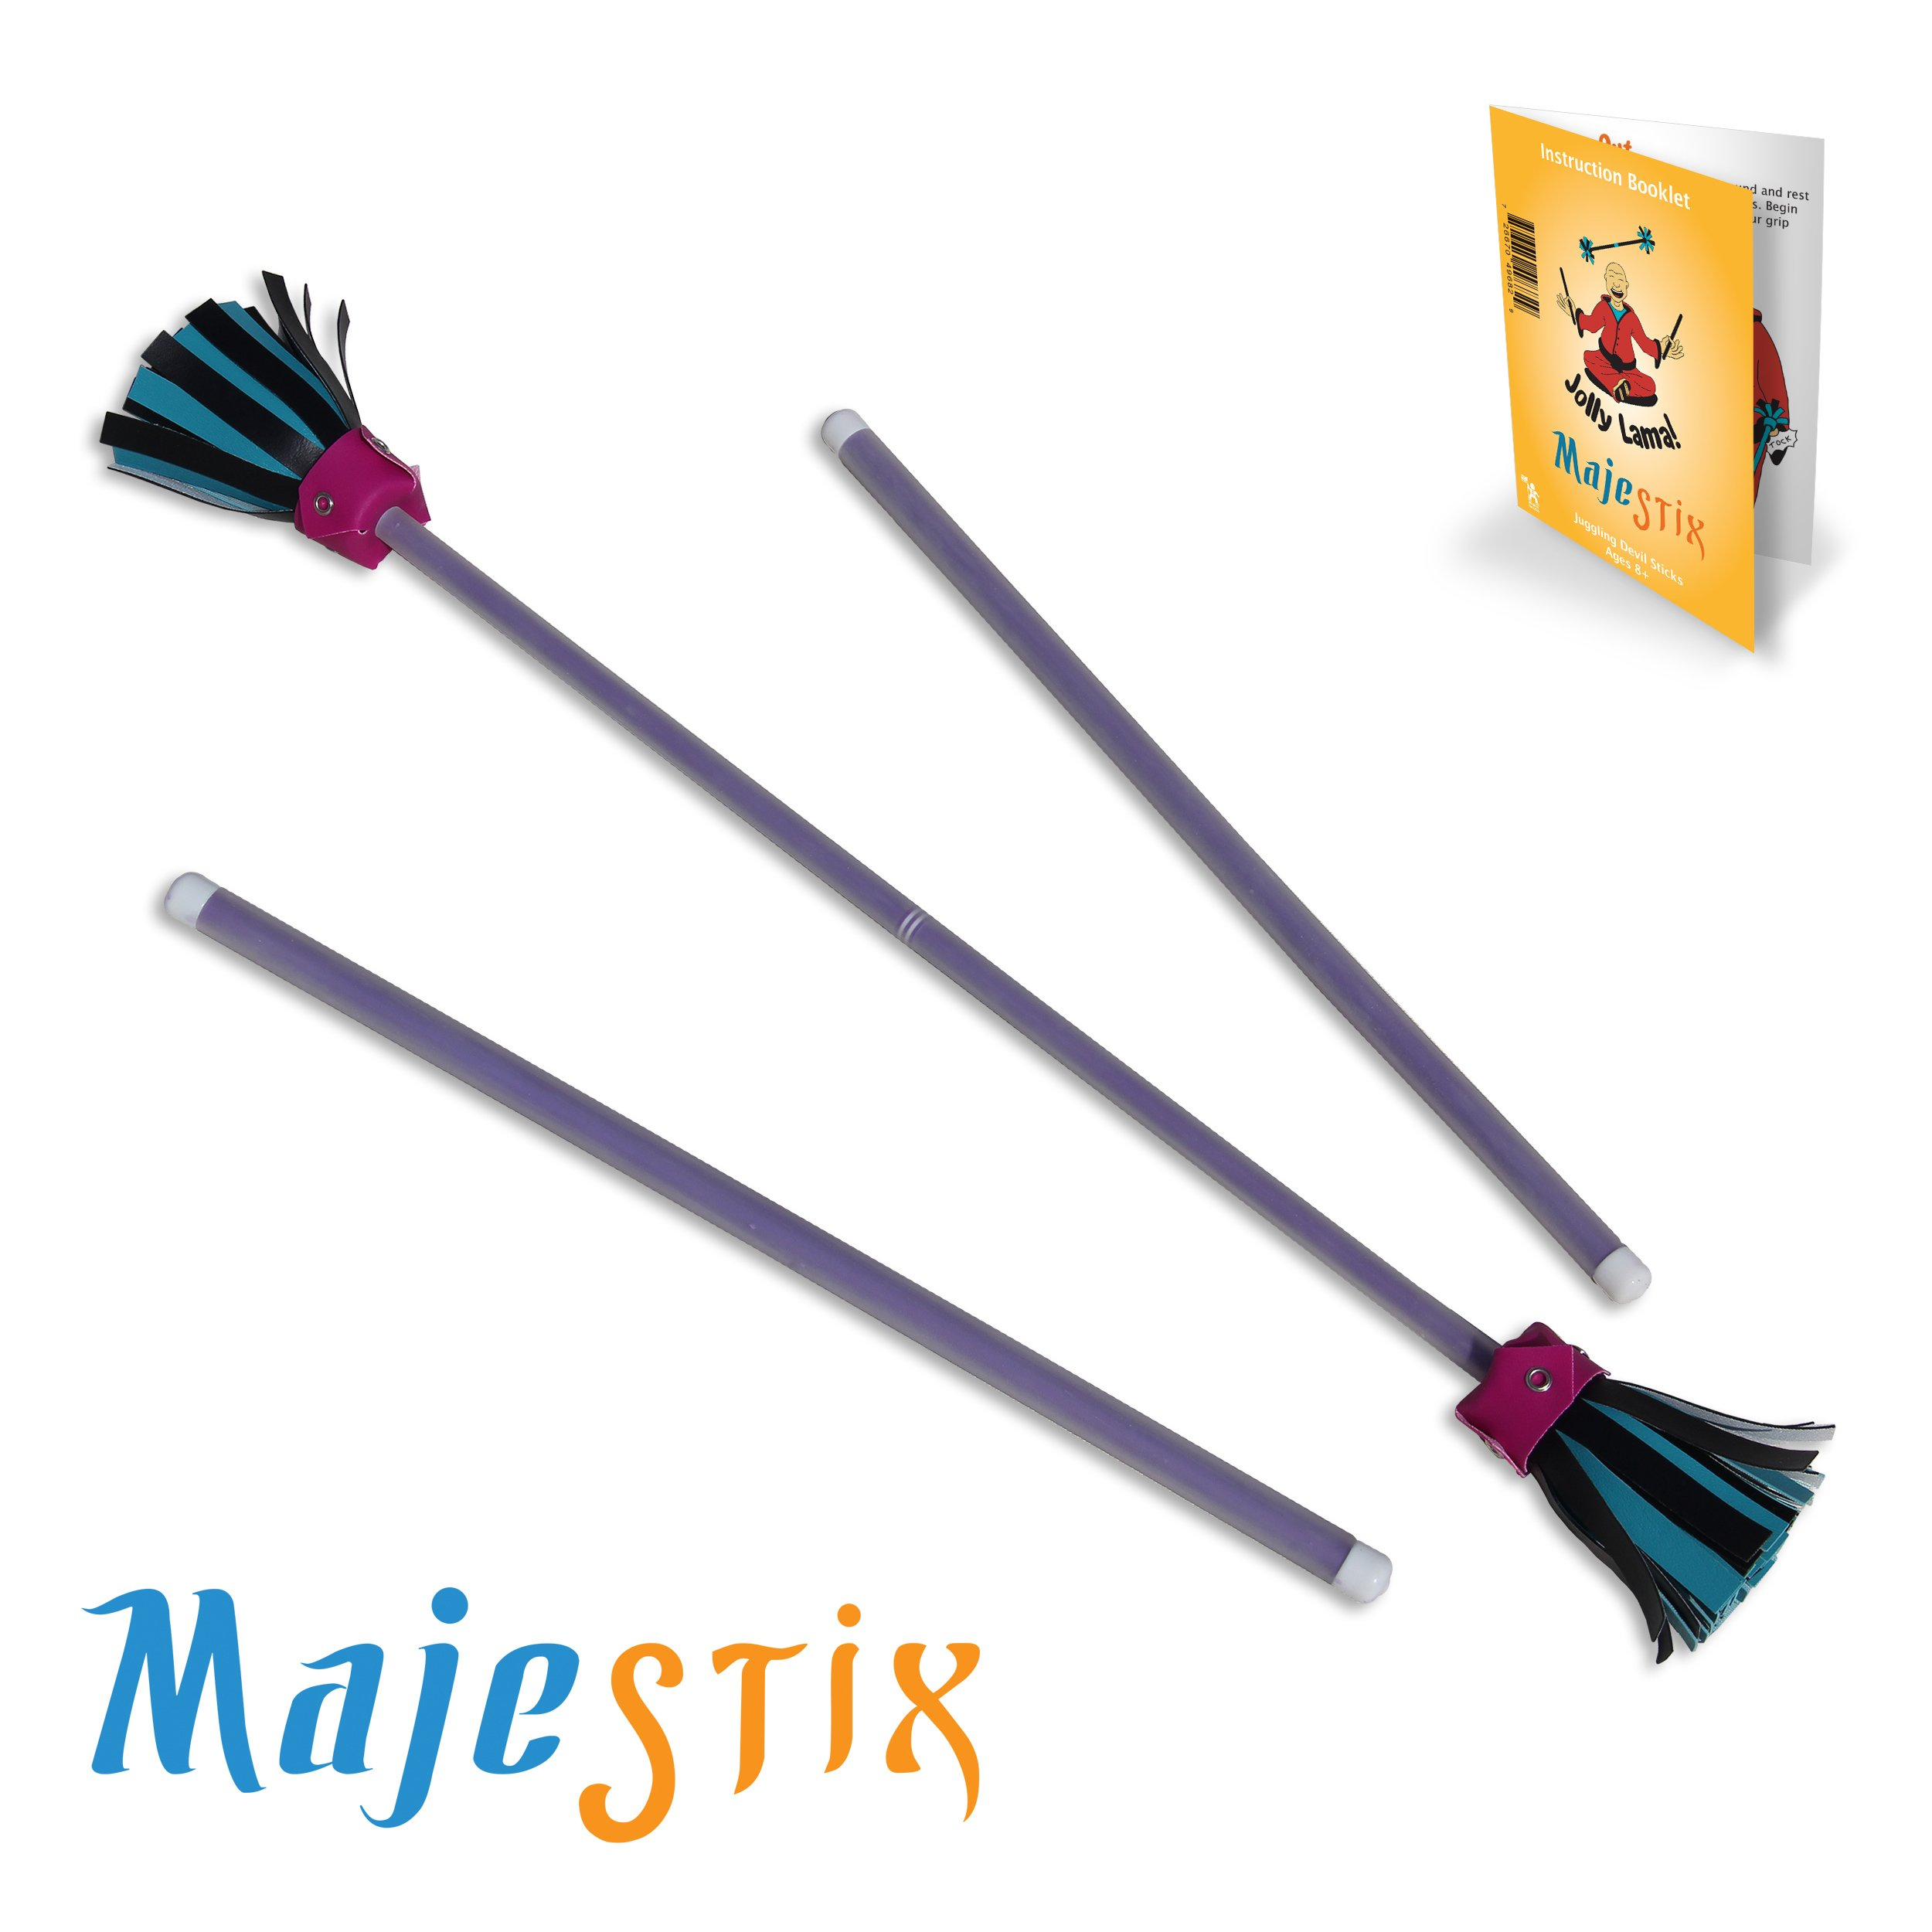 Jolly Lama! Purple Majestix Juggling Sticks Devil Sticks